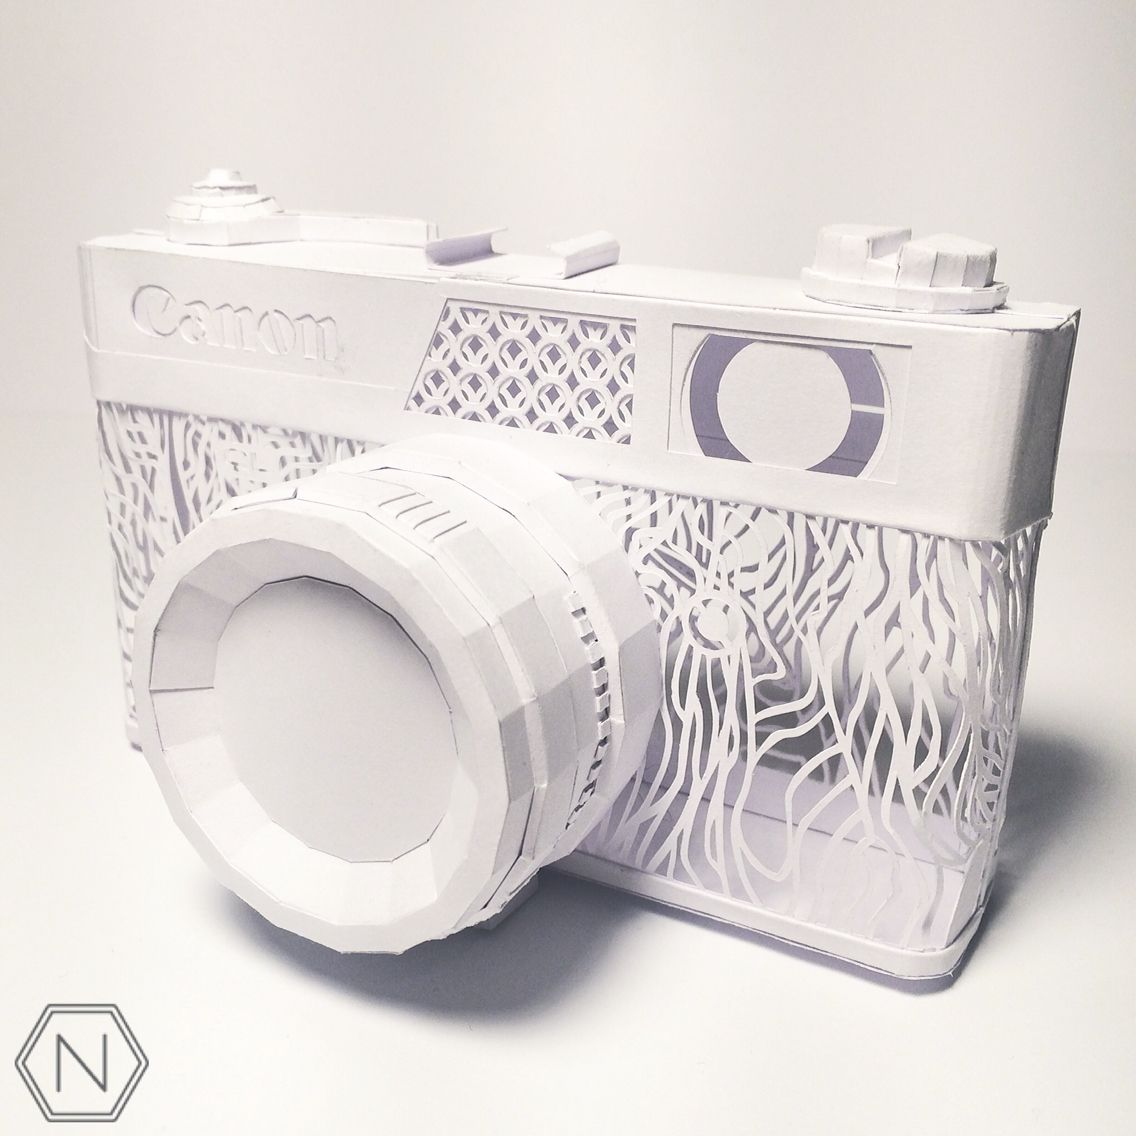 Paper sculpture Canon canonet AL-17 camera made out of a single ...